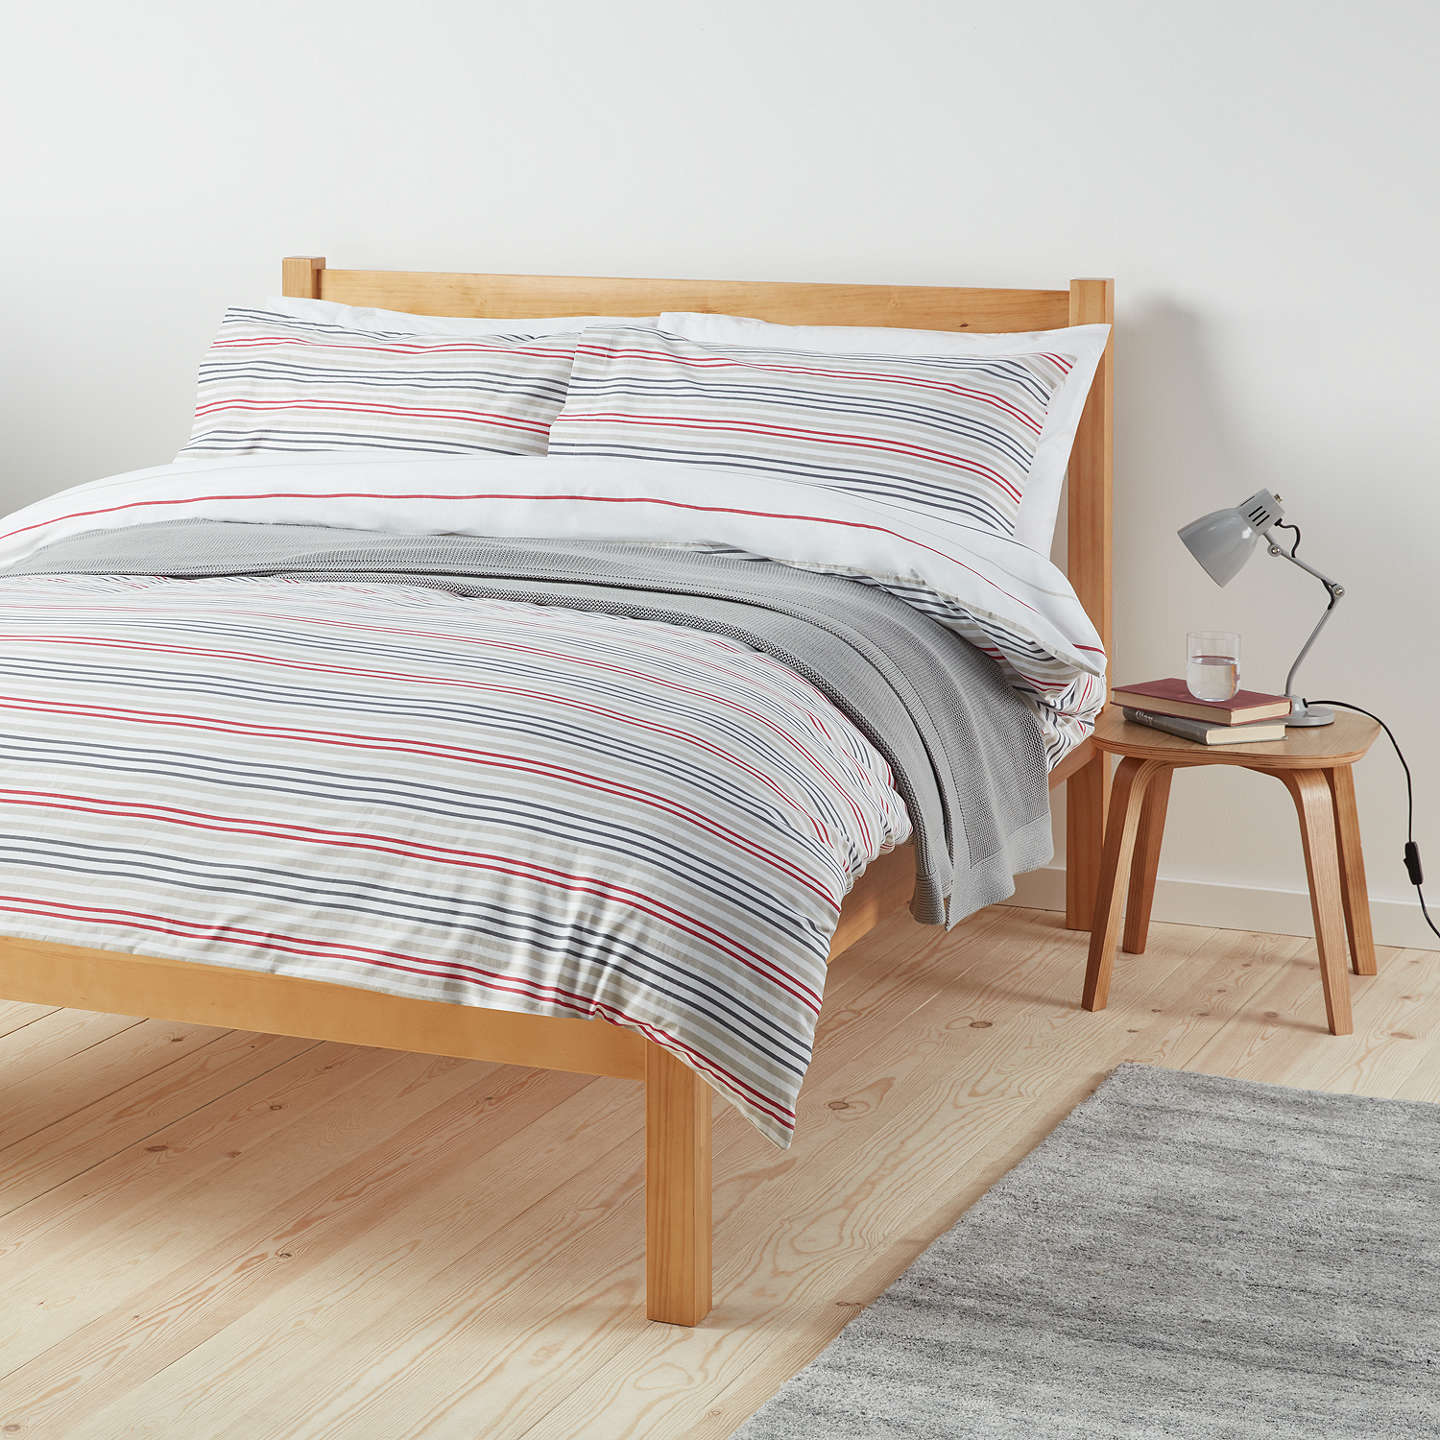 John Lewis The Basics Polycotton Stripes Duvet Cover And Pillowcase Set, Red/Natural by John Lewis